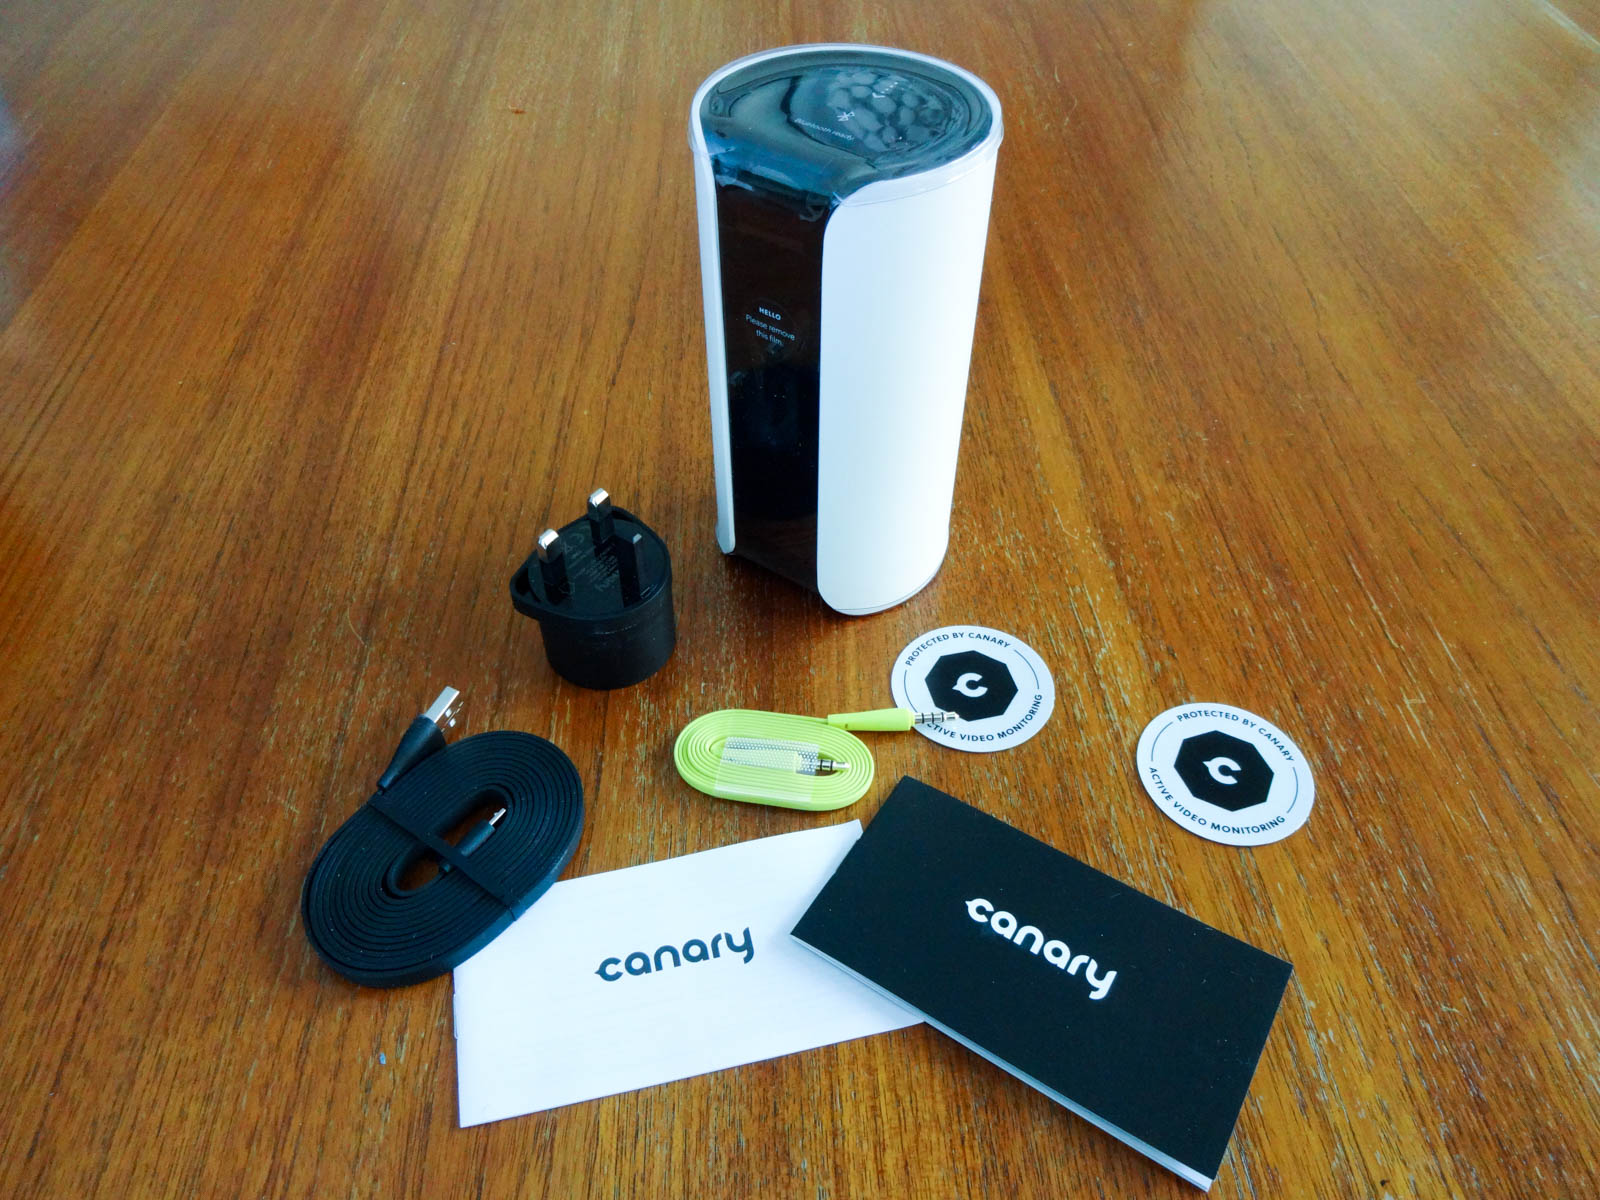 Canary home secruity device review